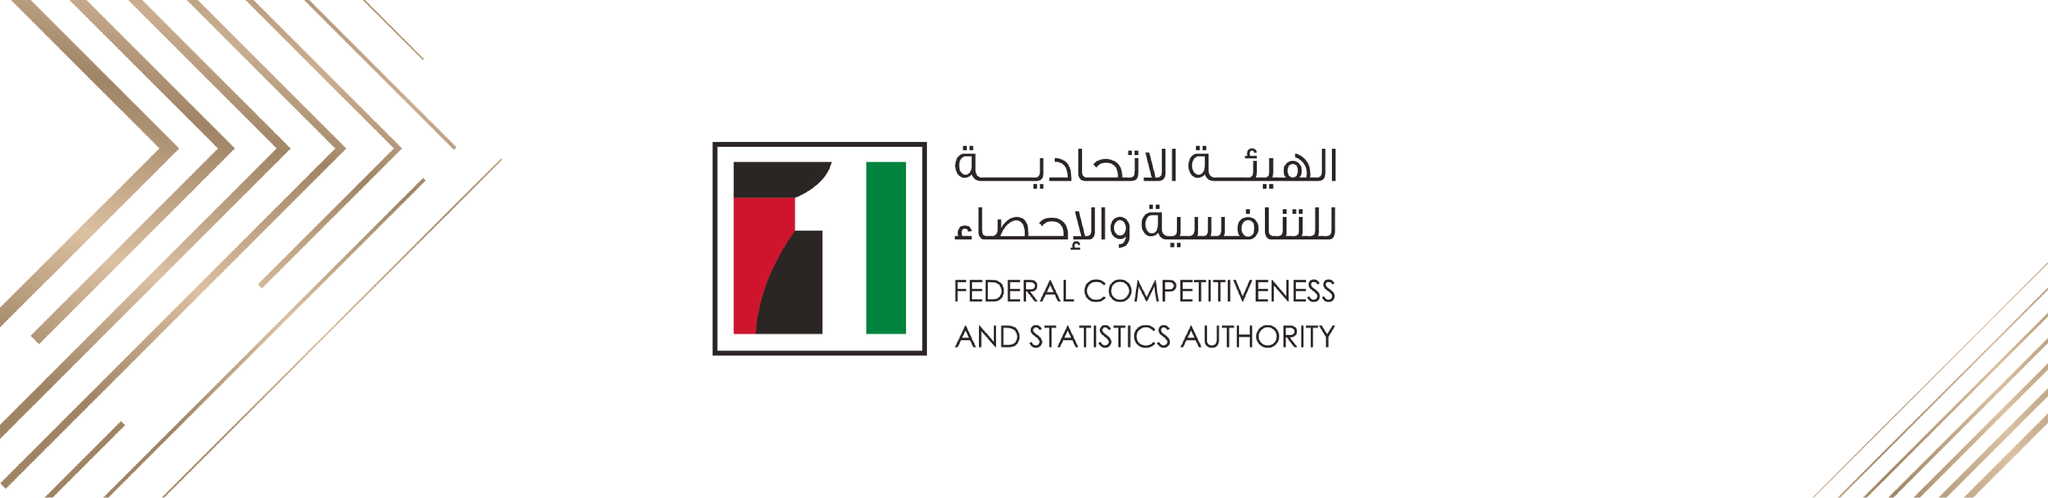 Federal Competitiveness And Statistics Authority (Fcsa)